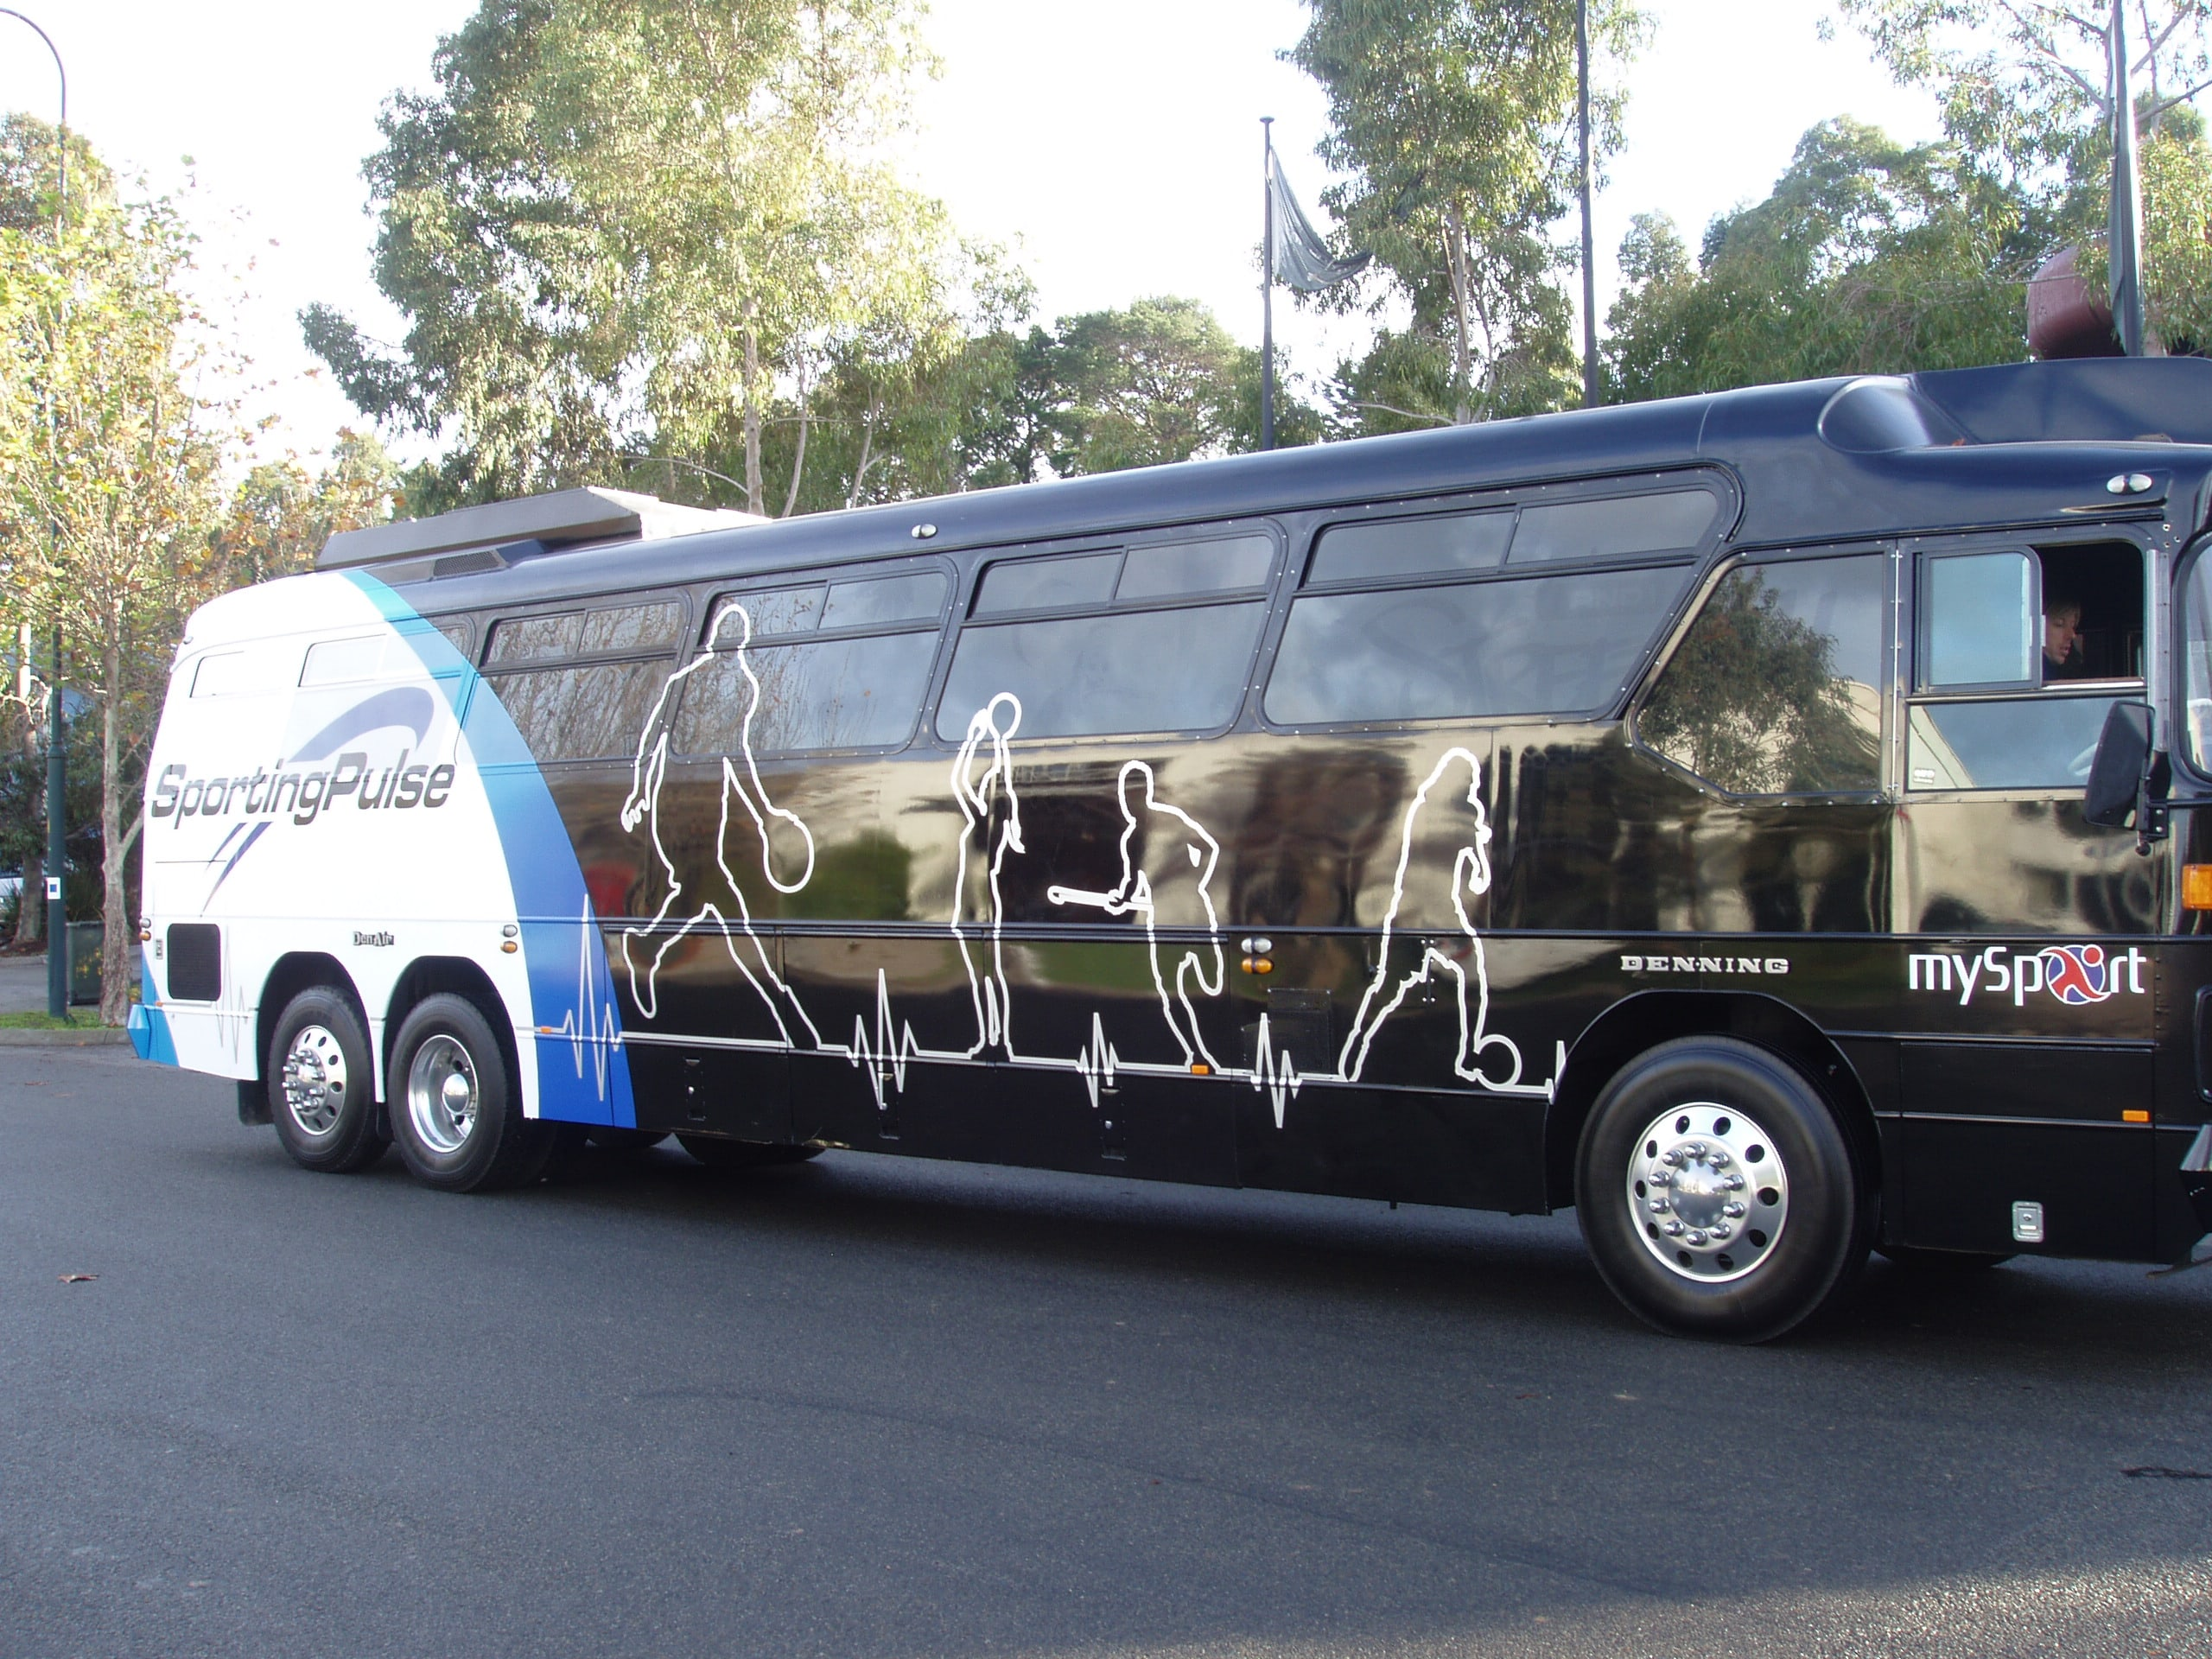 Sporting pulse bus vehicle signage side view